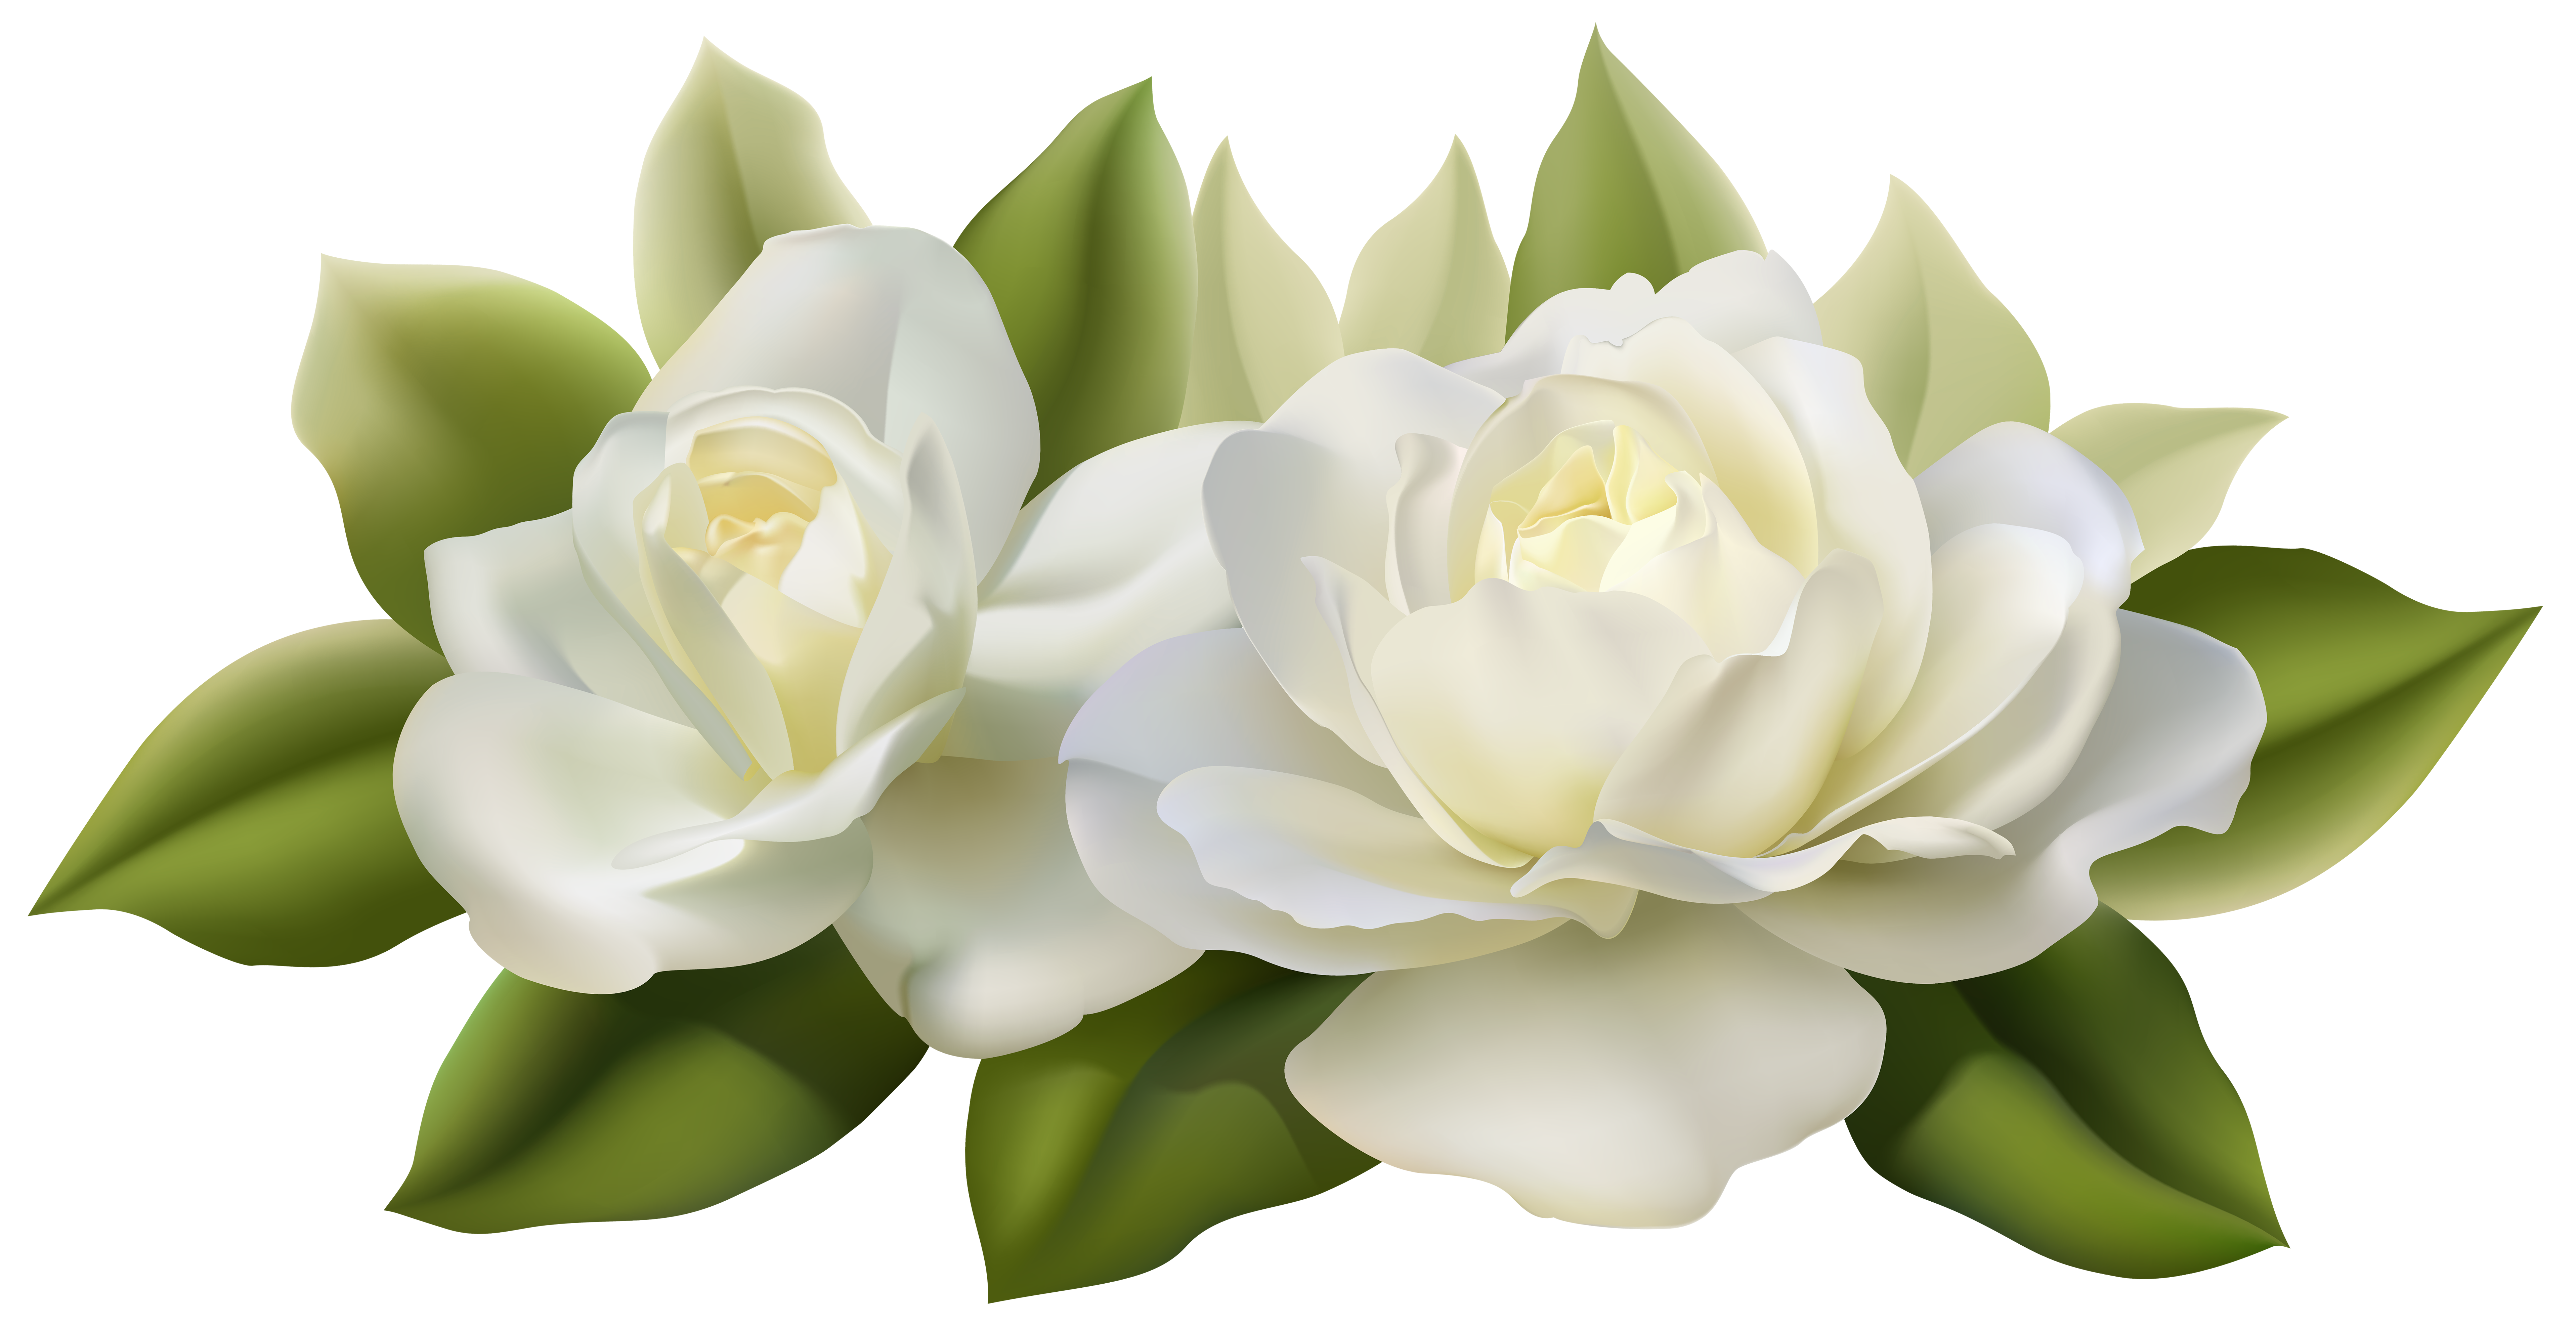 White roses png. Beautiful with leaves image